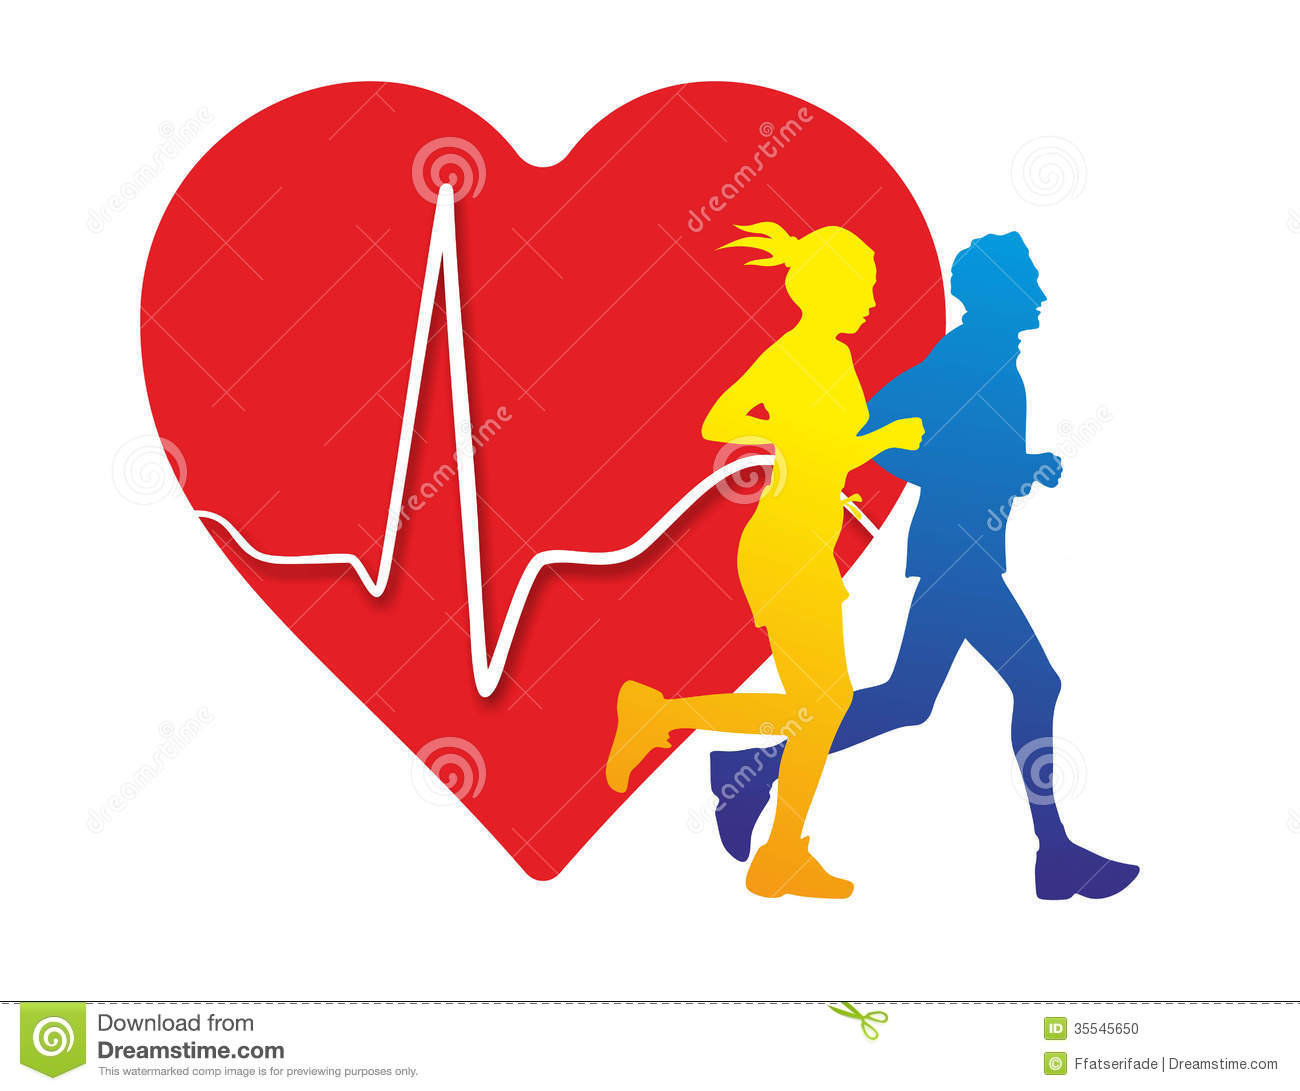 Stock Photo Heart Medicine Schematic Illustration Relation Sport Health Image35545650 in addition Planos Casas Modernas as well Ford Crown Victoria Police Interceptor moreover Stock Vector Types Of Muscle Tissue Skeletal Muscle Smooth Muscle Cardiac Muscle Vector Scheme besides Spartan Pixel Art. on 3d logo schematic